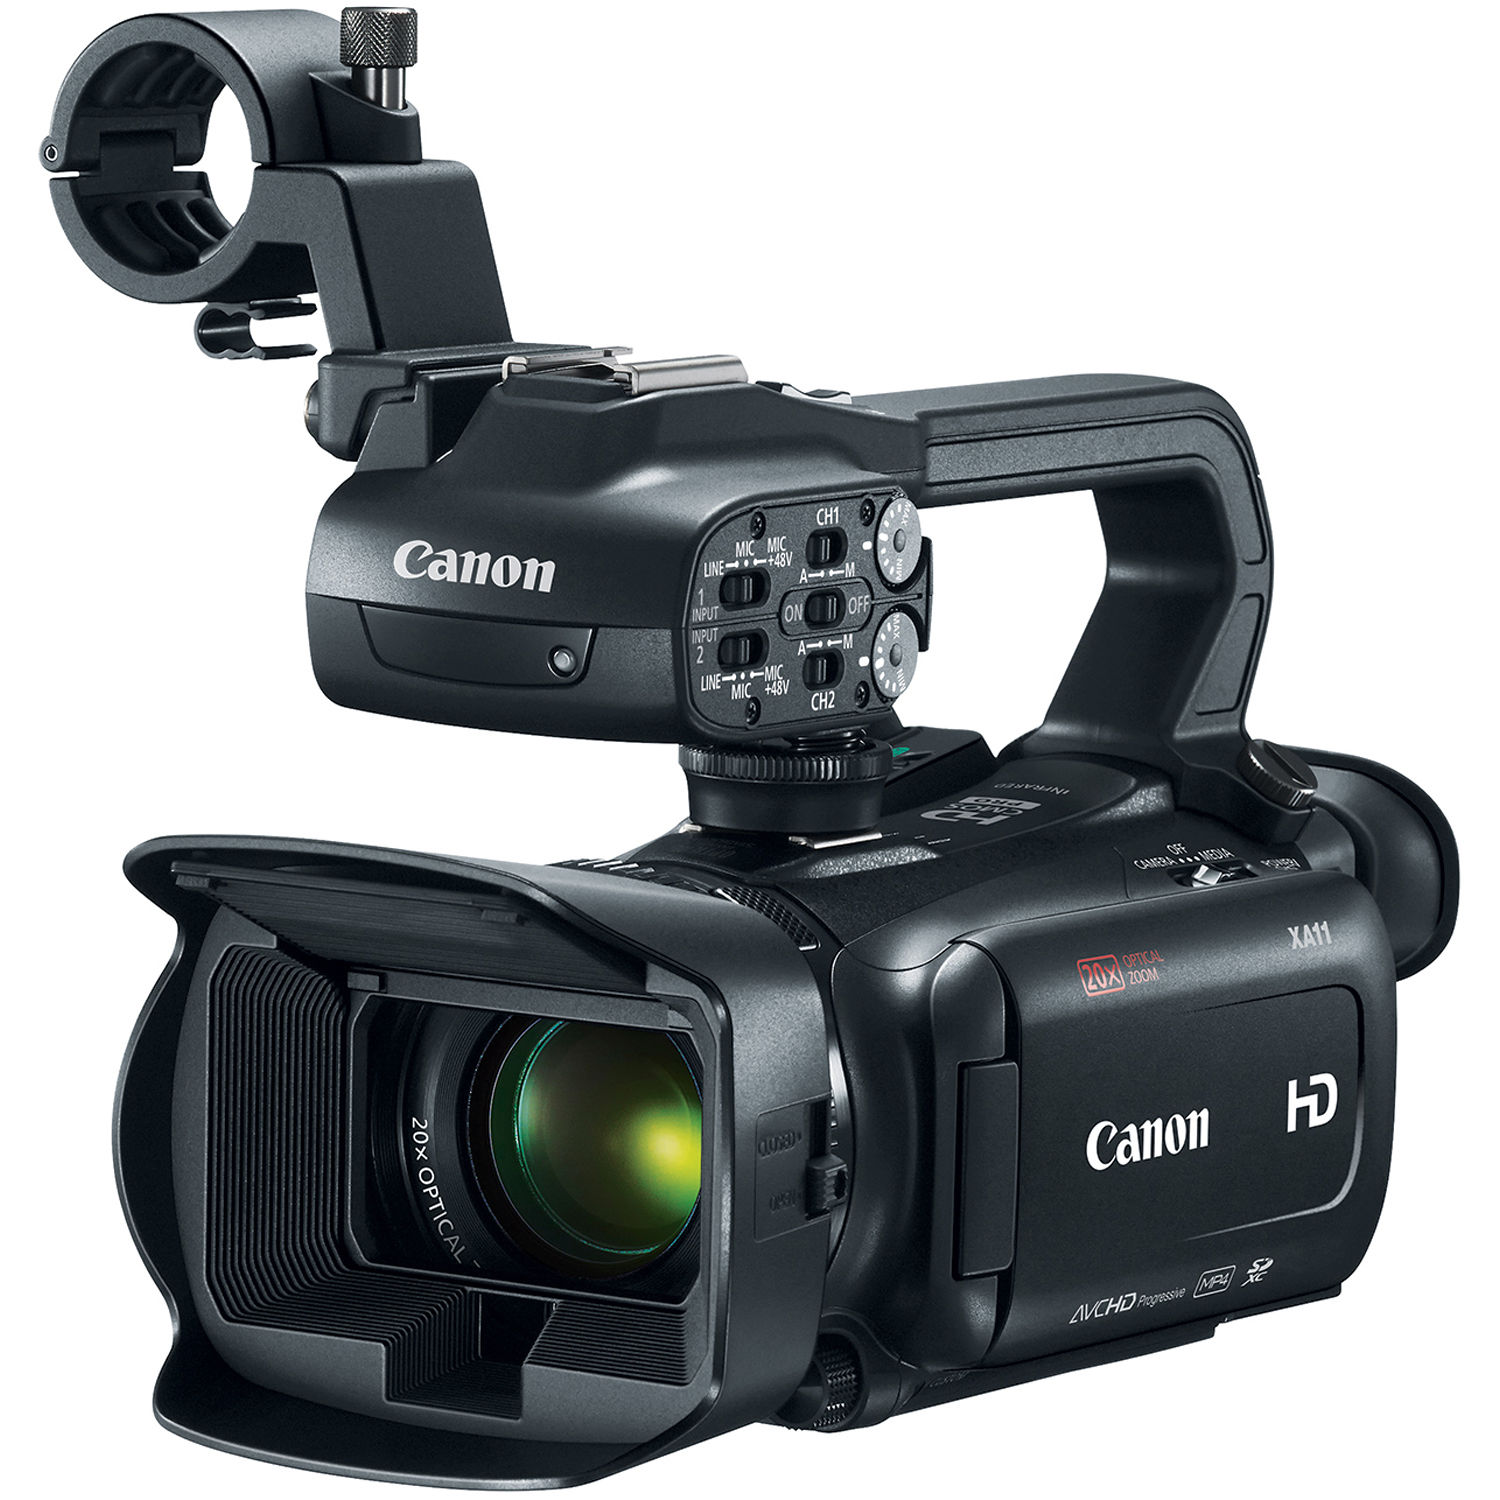 Canon Xa11 Compact Full Hd Camcorder With Hdmi And 2218c002 Bh 5 Pin Dmx Wiring Diagram Composite Output